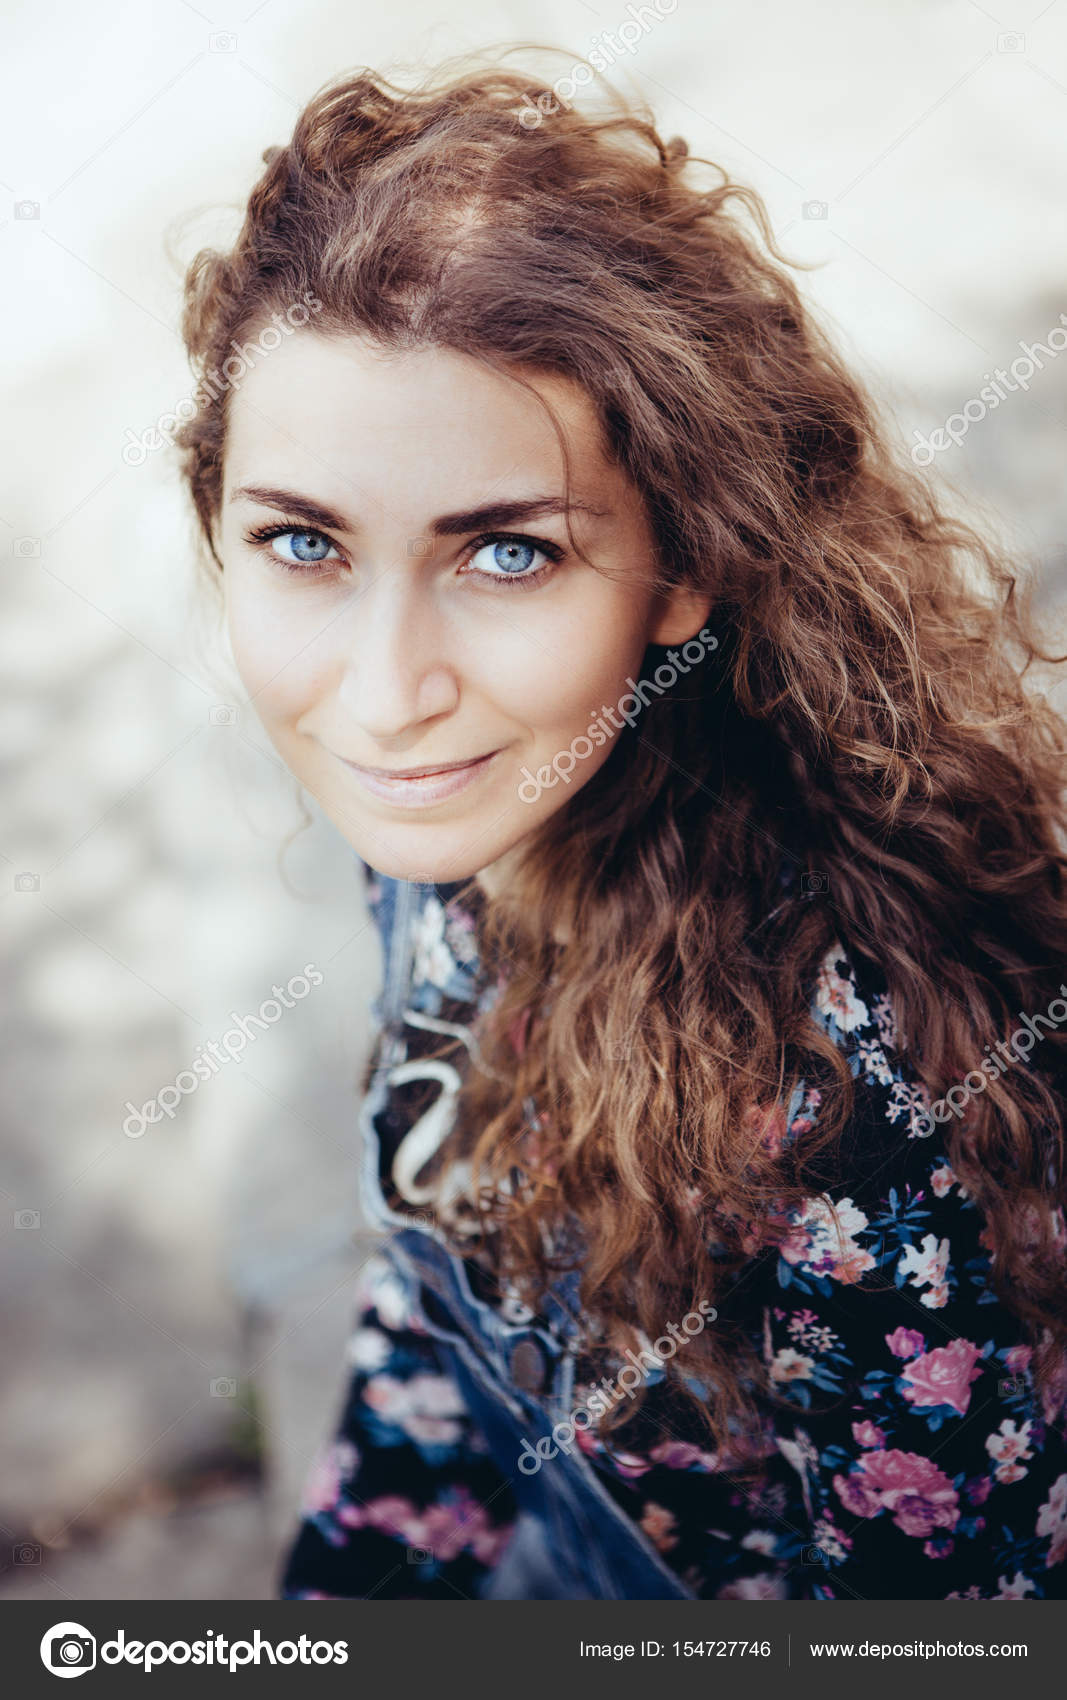 Beautiful Woman With Blue Eyes Looking Into The Camera Stock Photo C Justesfir 154727746